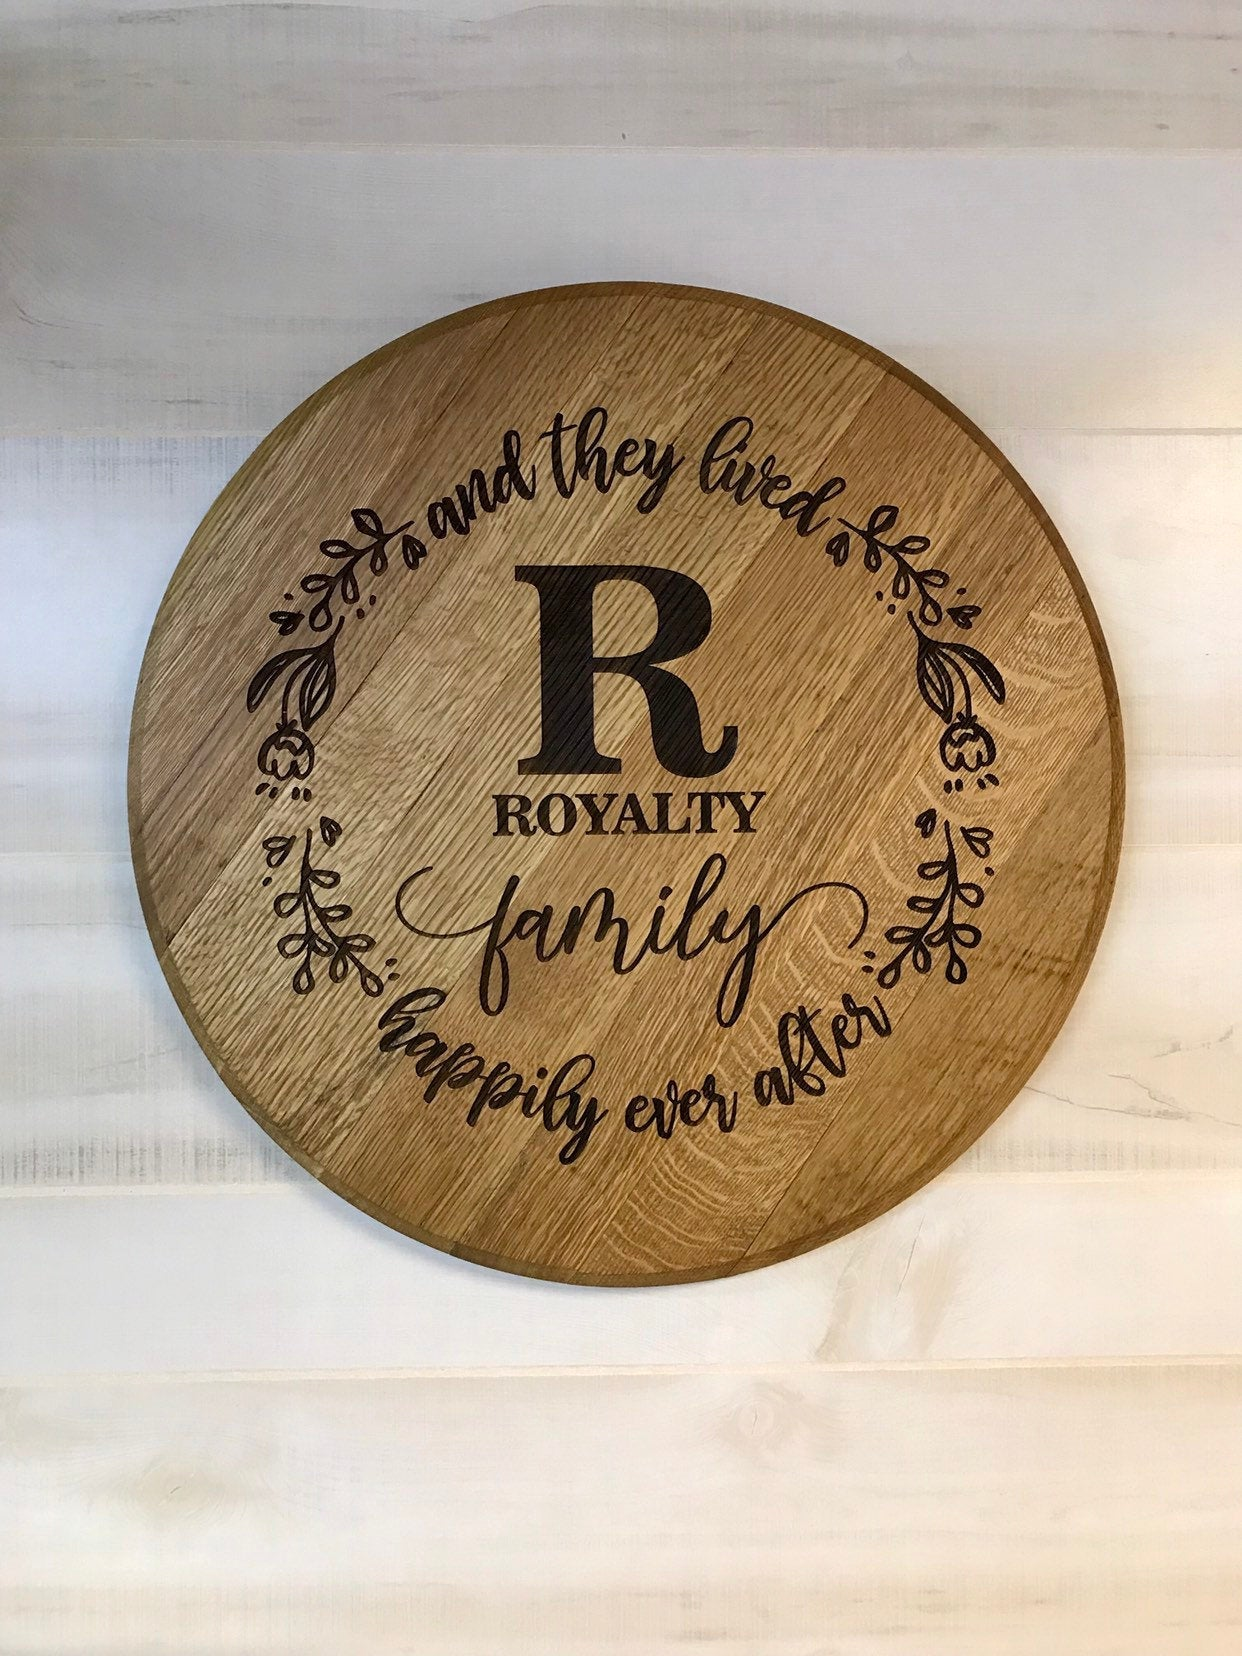 Bourbon Barrel Head to Personalize for Weddings, Anniversaries, Housewarming Gifts, Home Decor